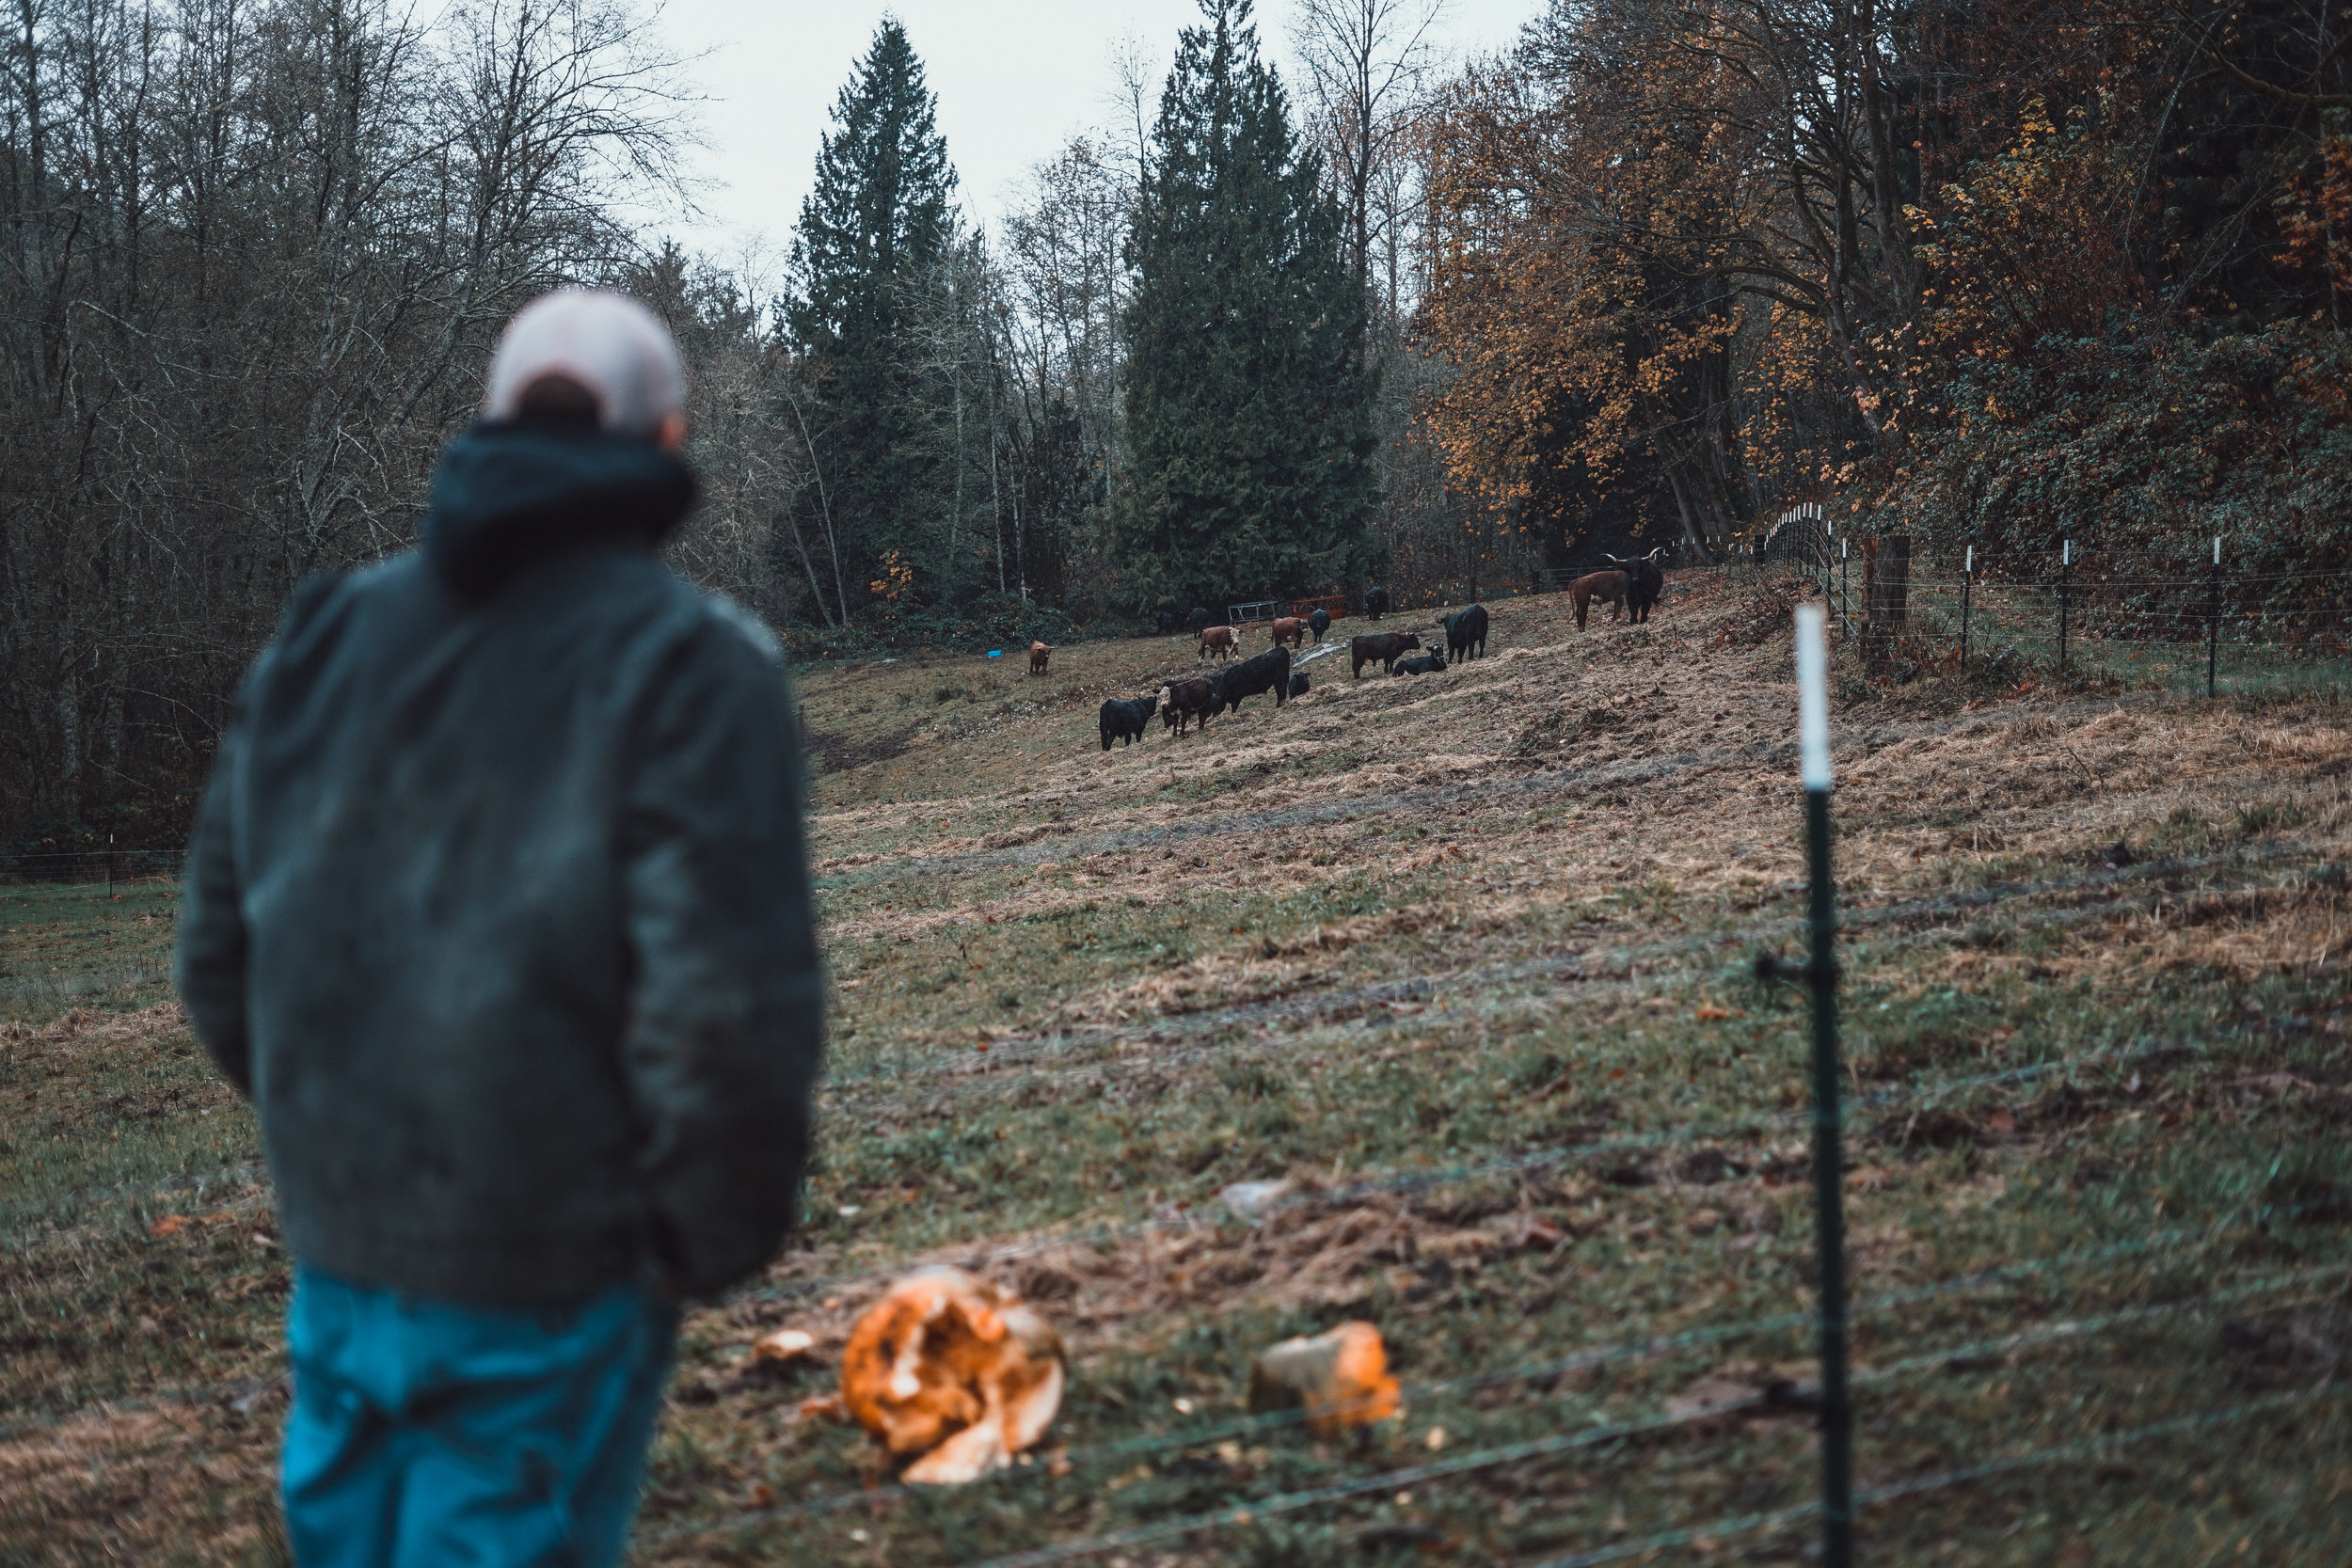 Tory looking out at his Angus cattle. Photo by Courtney Baxter / TNC